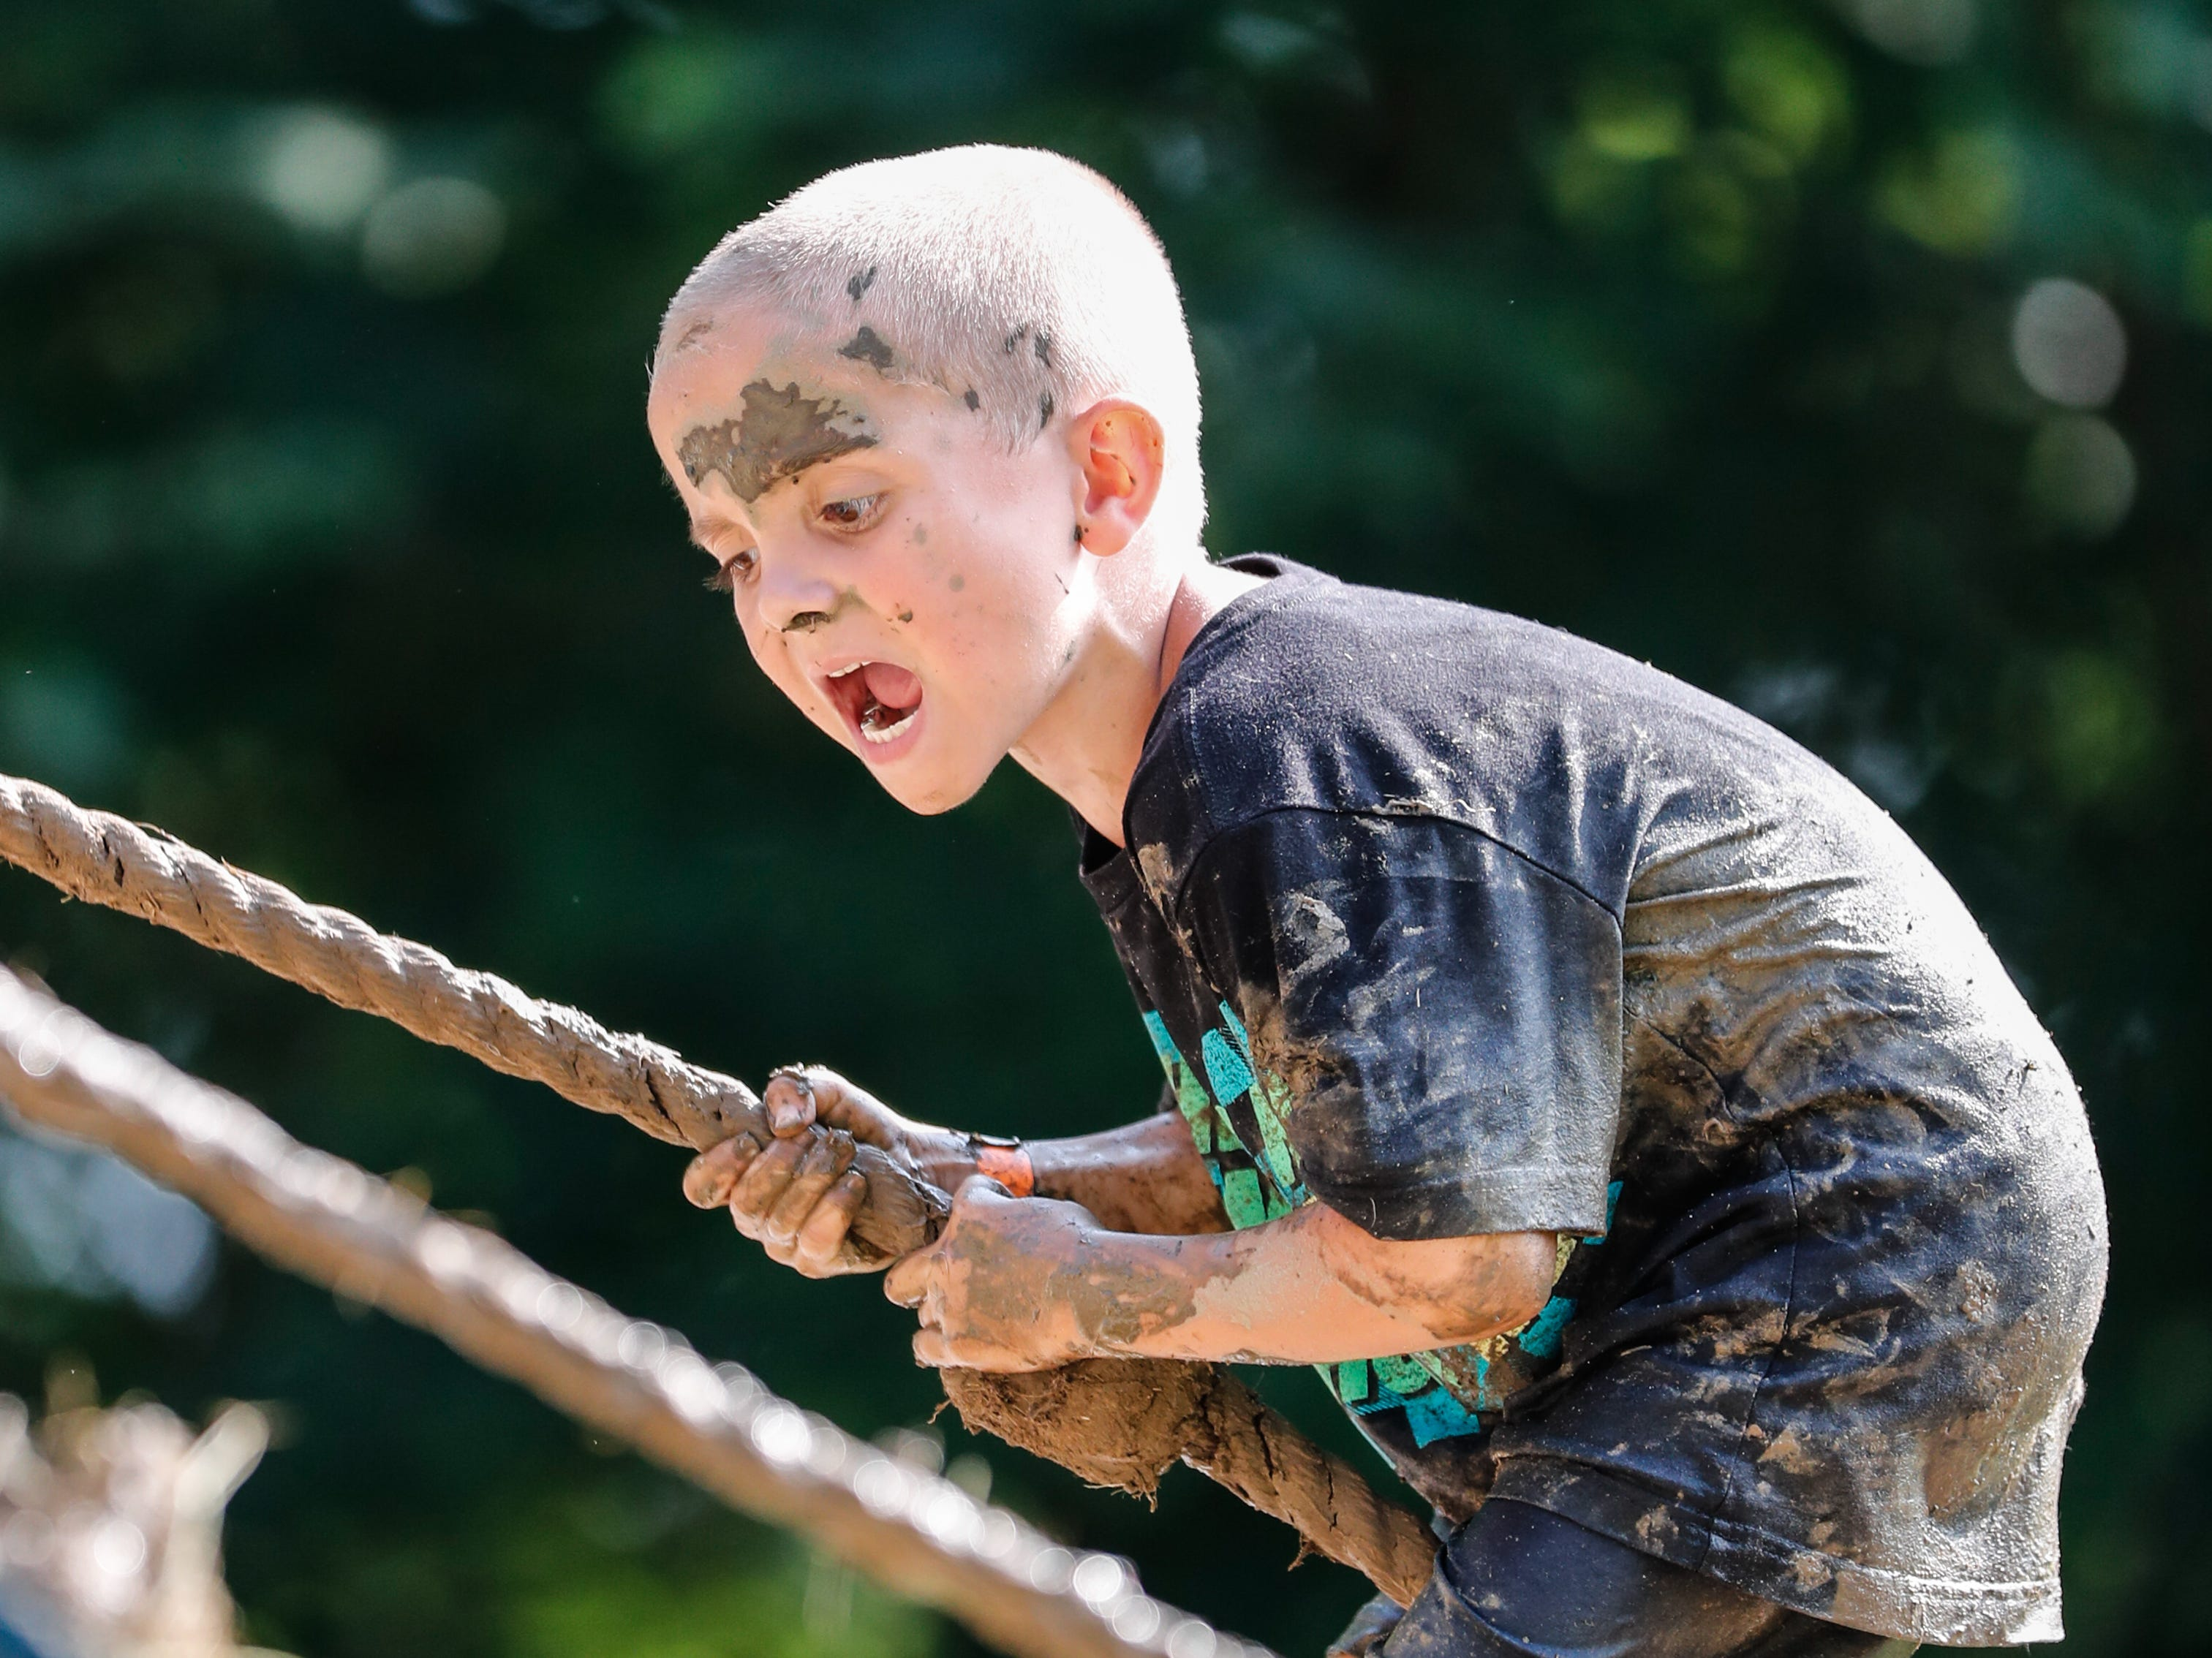 L.J. Lewellen lets out a scream while climbing an obstacle during the annual Hollis Adams Mud Run at Camp Sertoma in Indianapolis, on Saturday, June 16, 2018. Funds from the event support the Hollis Adams Foundation.